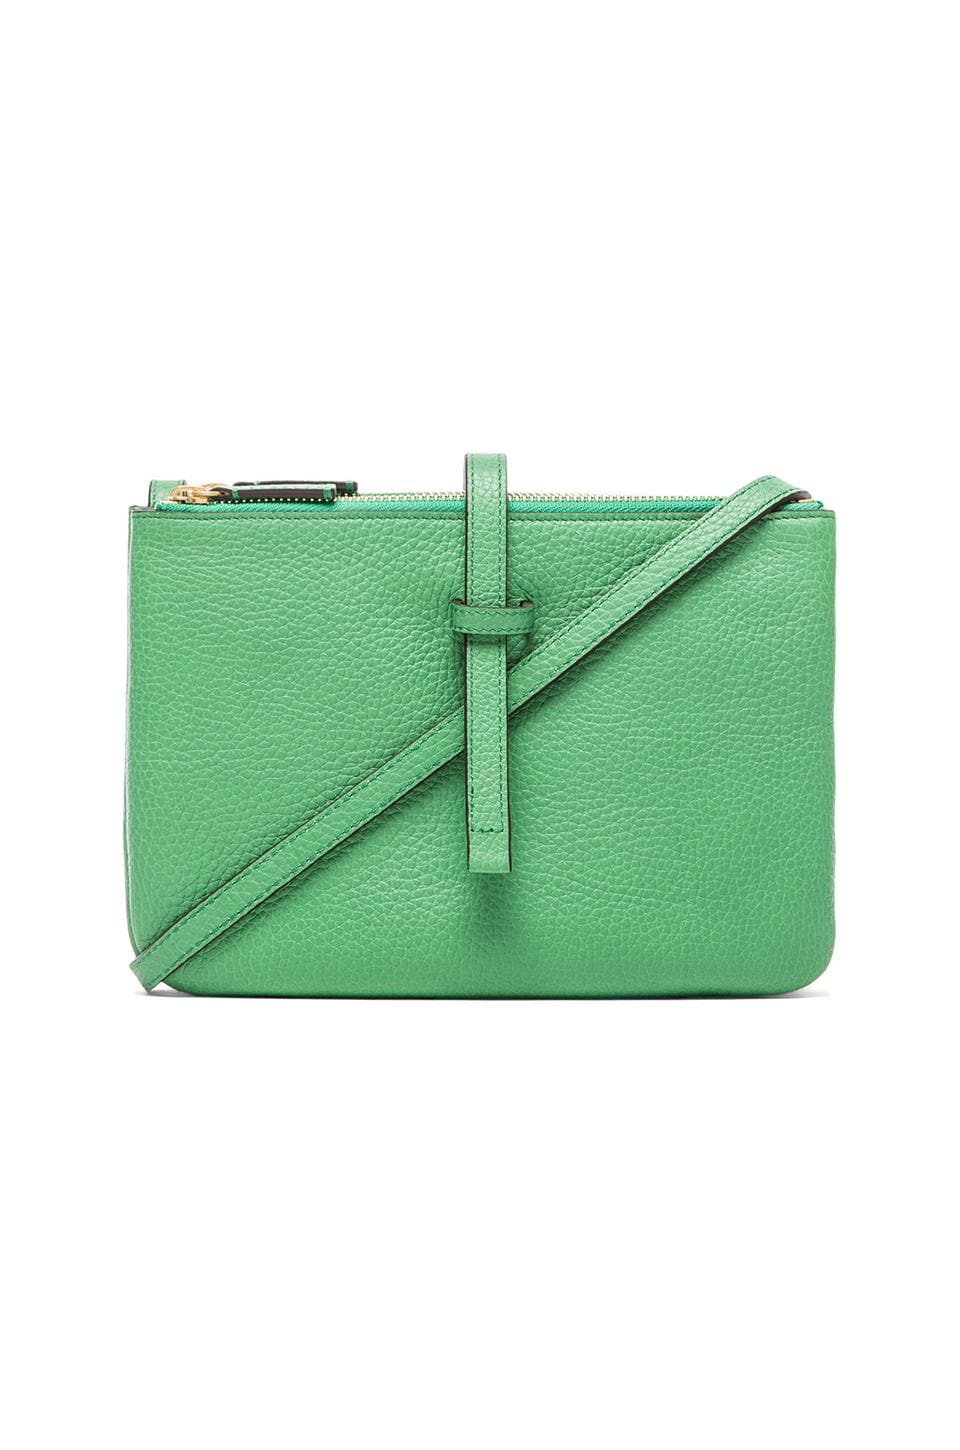 Annabel Ingall Jojo Crossbody in Celadon